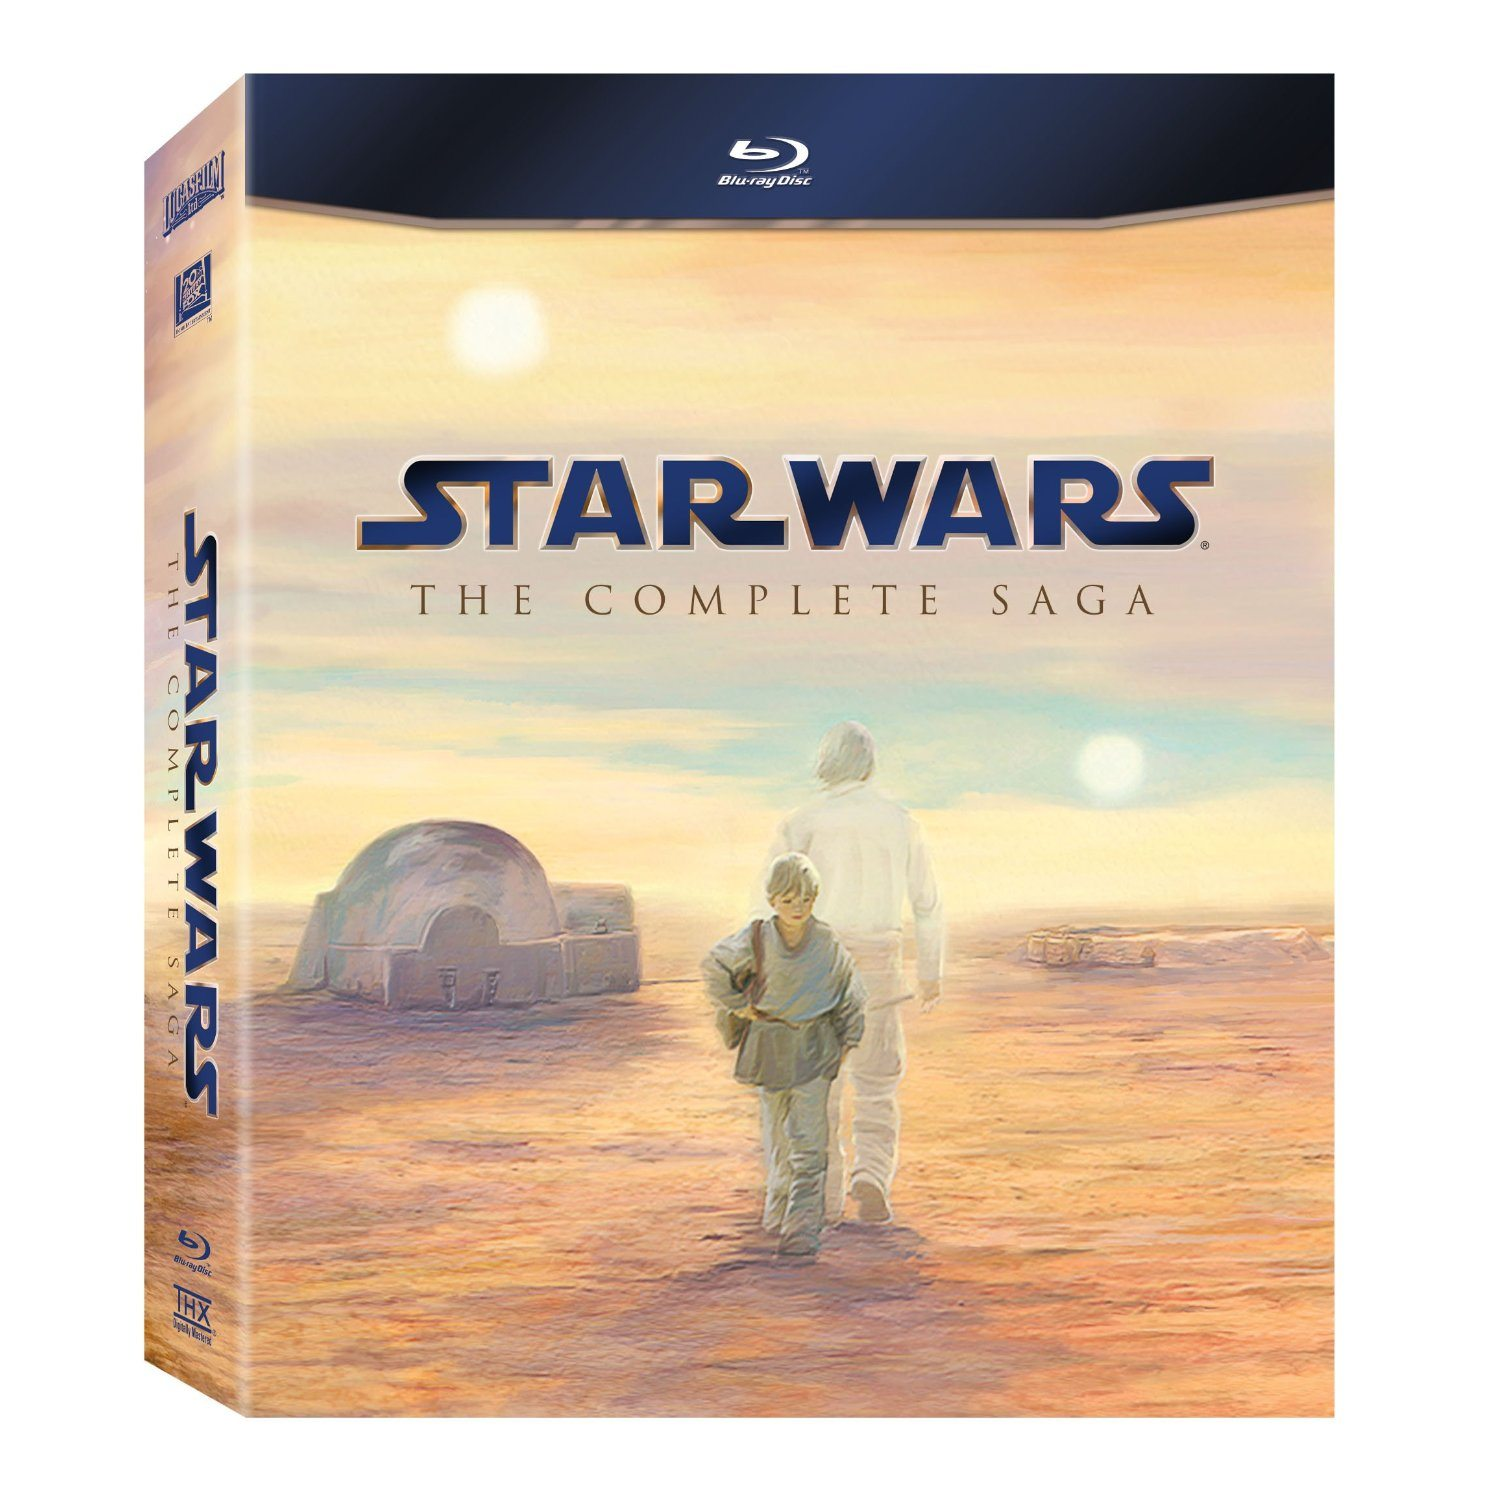 star wars the complete saga bluray set 6 movies only